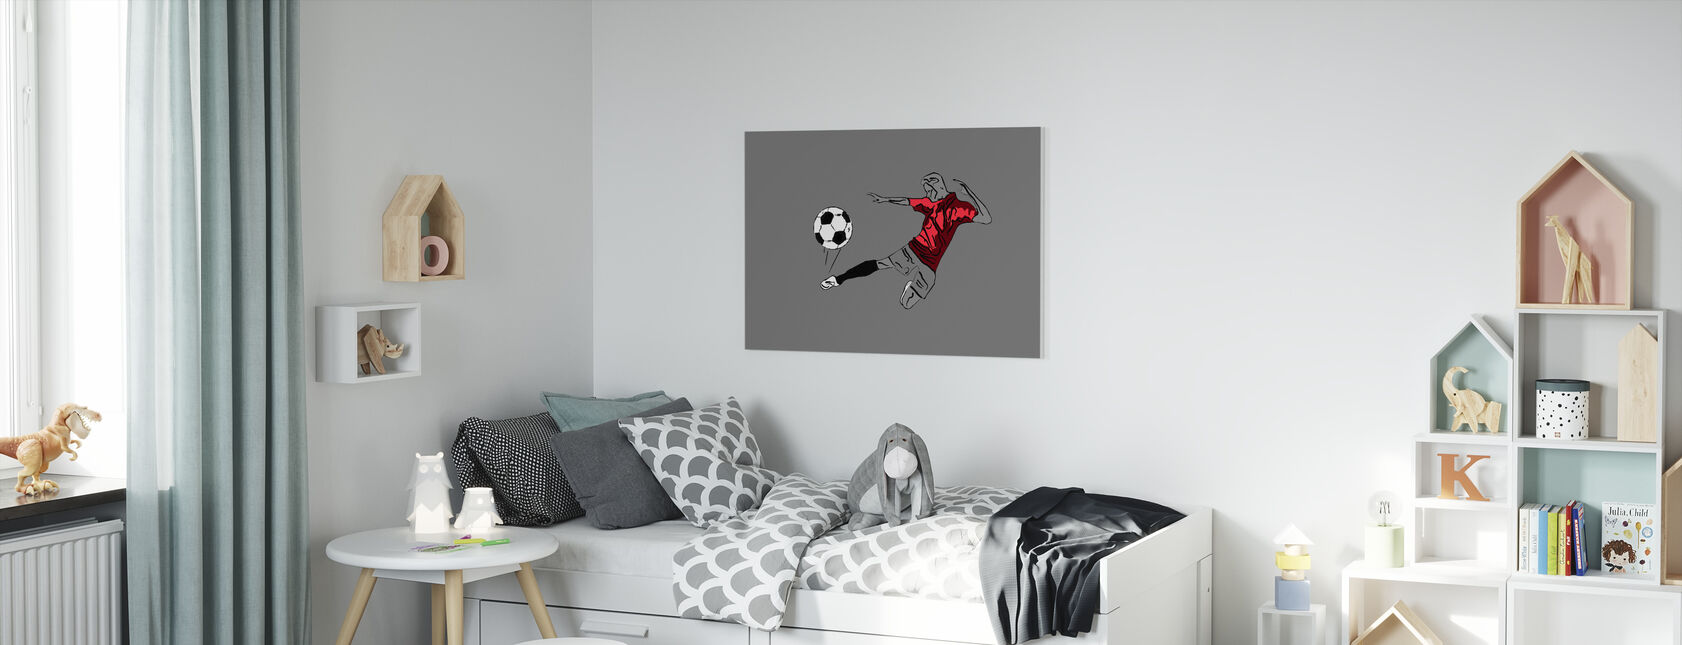 Kick It - Rood Grijs - Canvas print - Kinderkamer